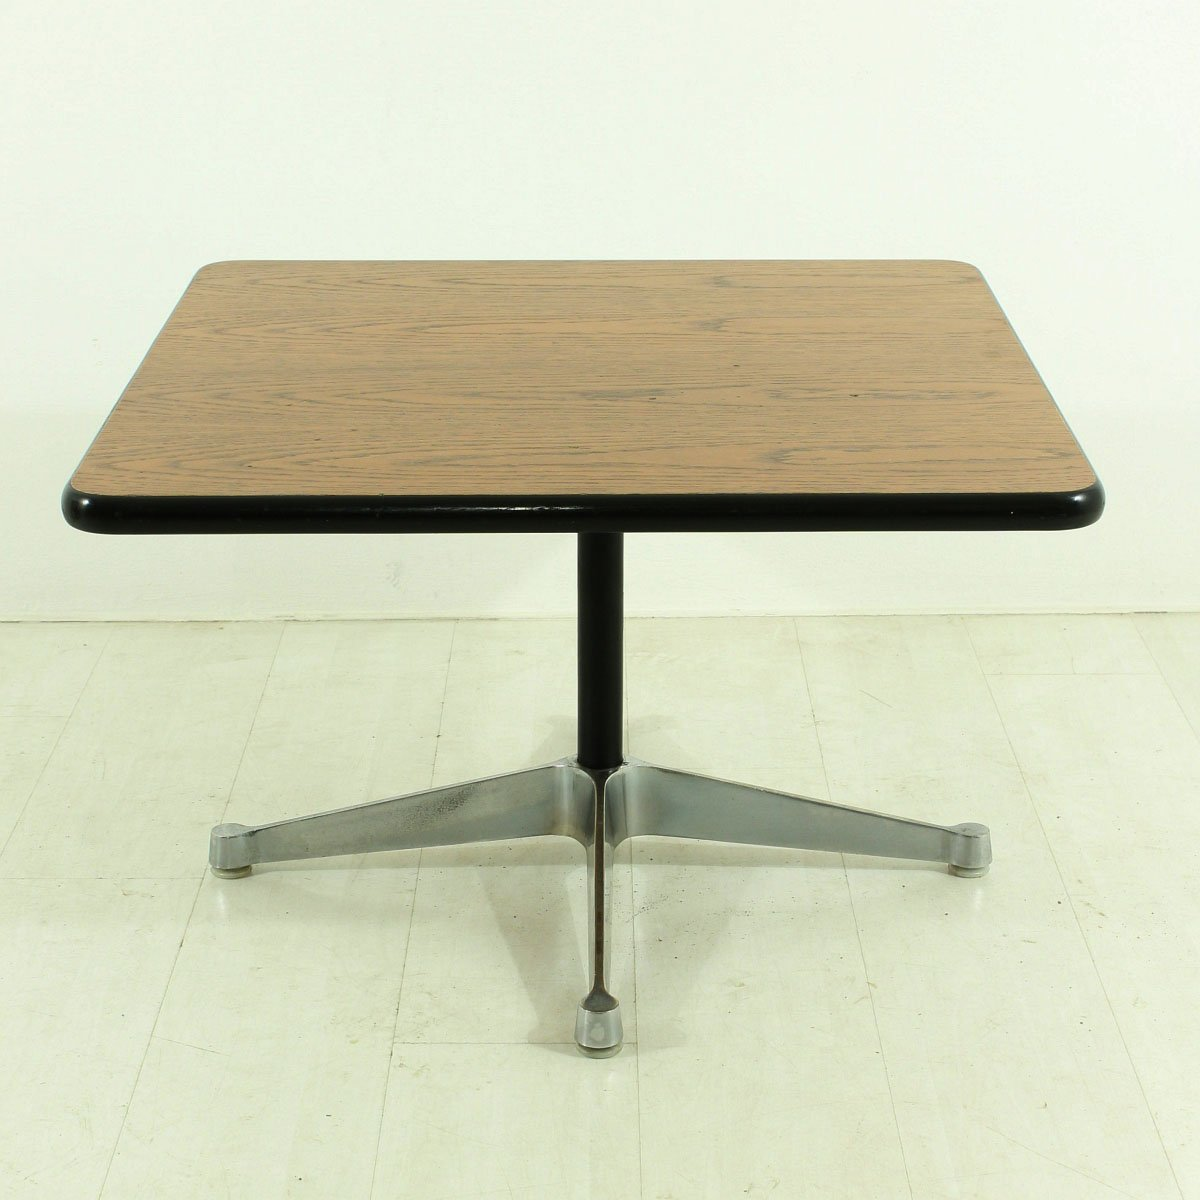 Vintage Four Star Base Coffee Table By Charles Ray Eames For Vitra For Sale At Pamono: bases for coffee tables